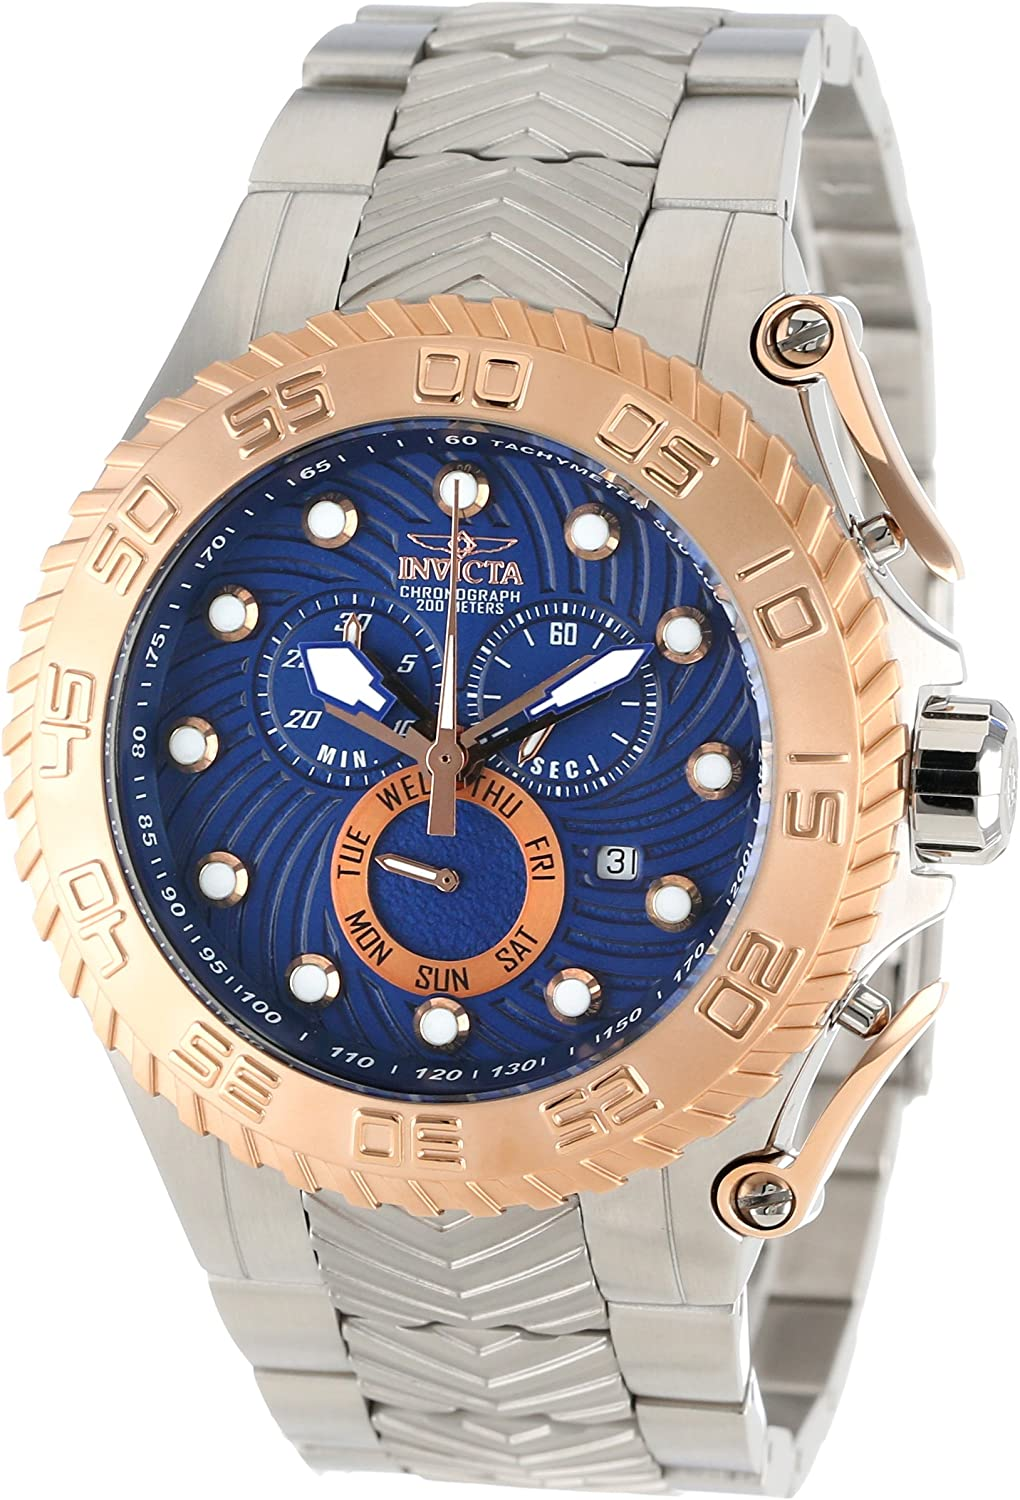 Invicta Men s 12939 Pro Diver Chronograph Blue Textured Dial Stainless Steel Watch